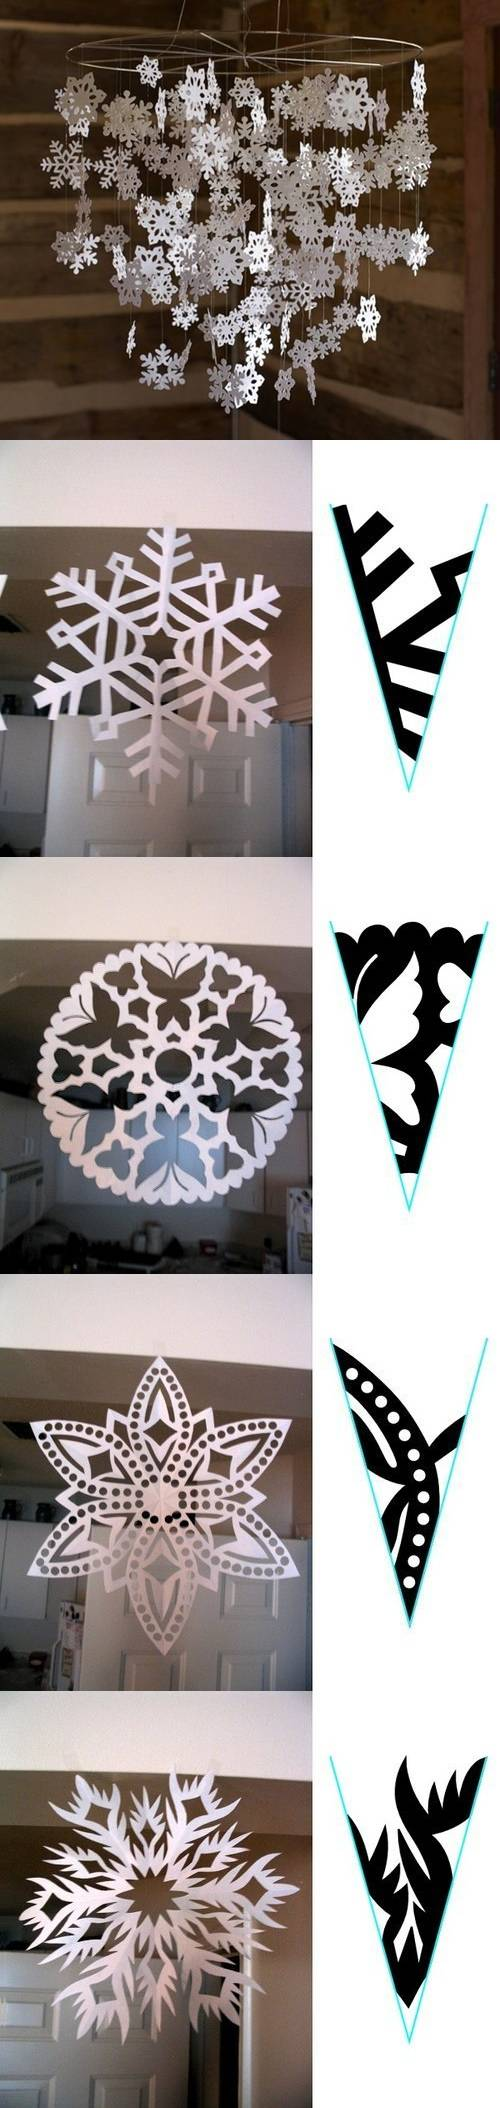 How to make Snowflake Paper Pattern step by step DIY tutorial instructions